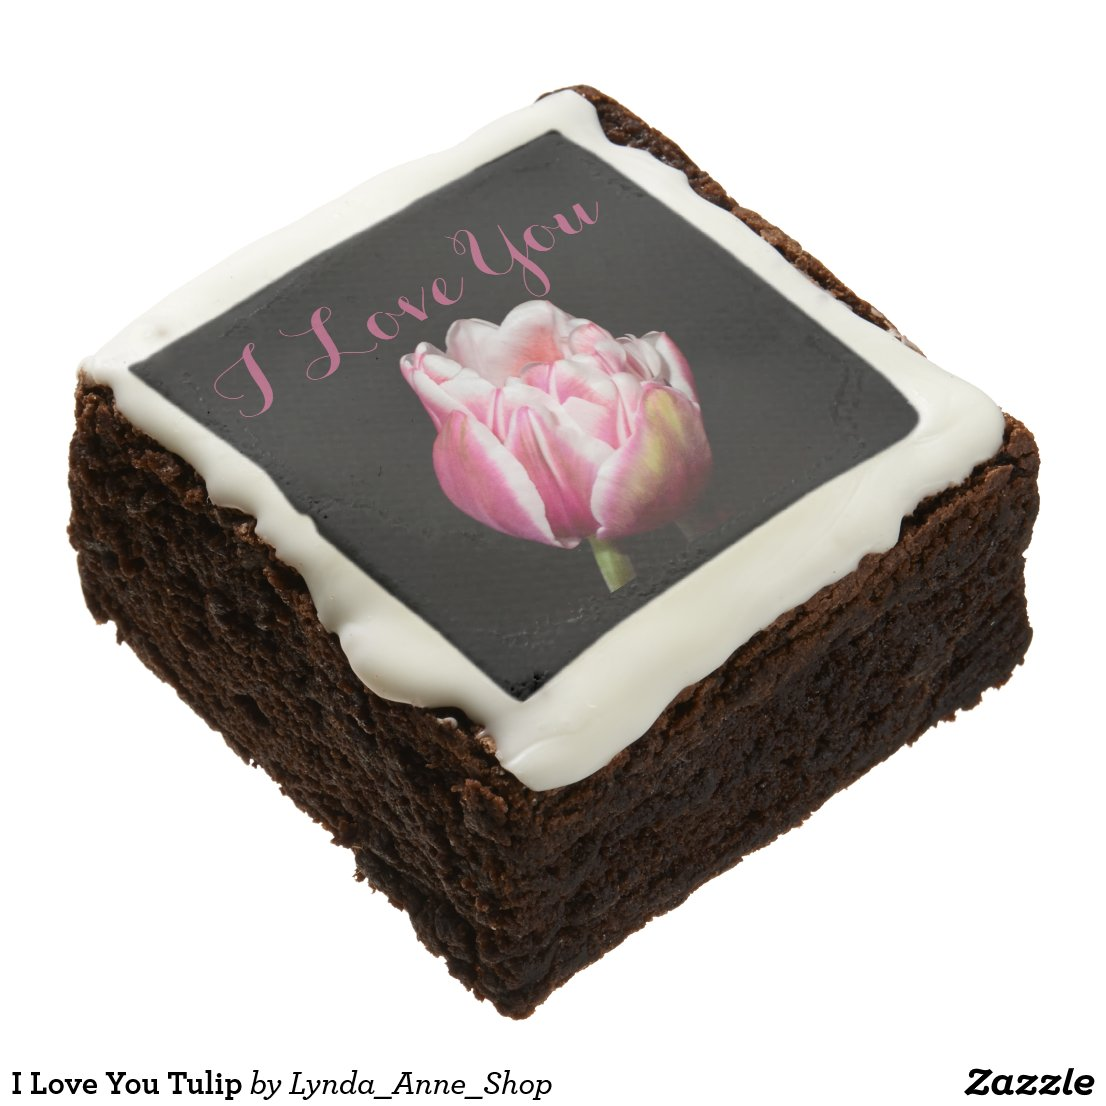 I Love You Tulip Brownie